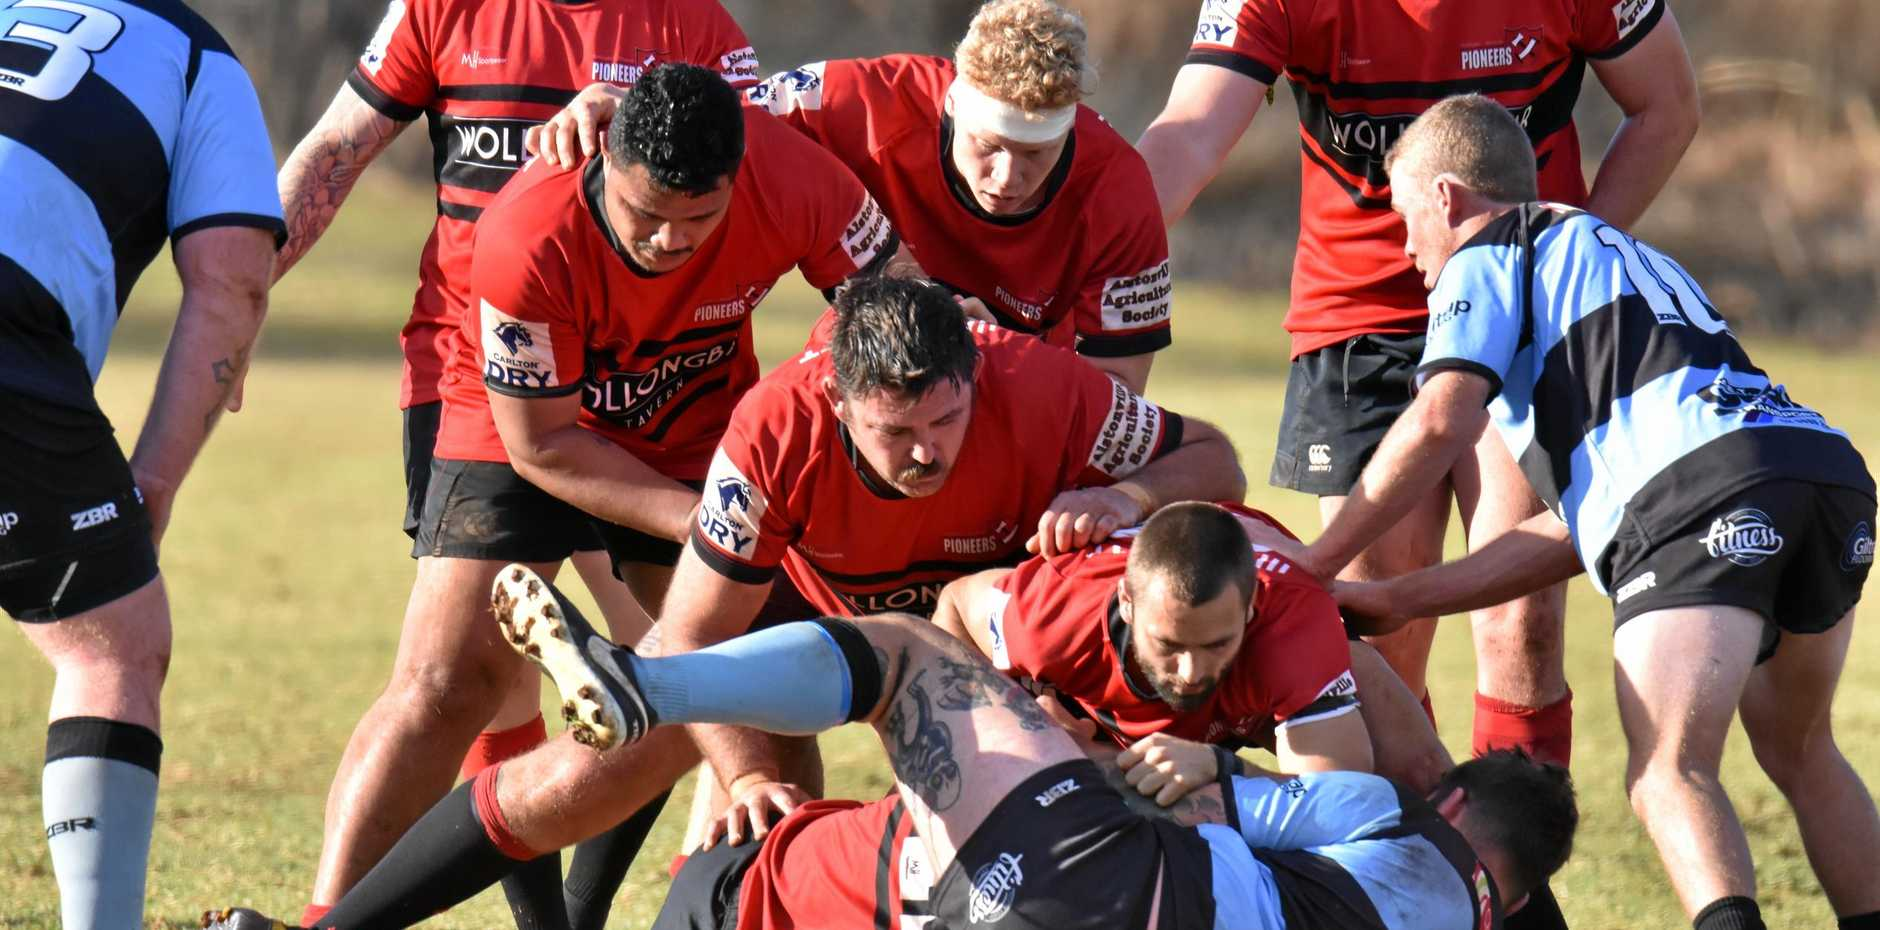 RUCK AND ROLL: Wollongbar forwards try to secure the ball during the Far North Coast rugby union major semi-final between the Pioneers (red) and Ballina (blue).